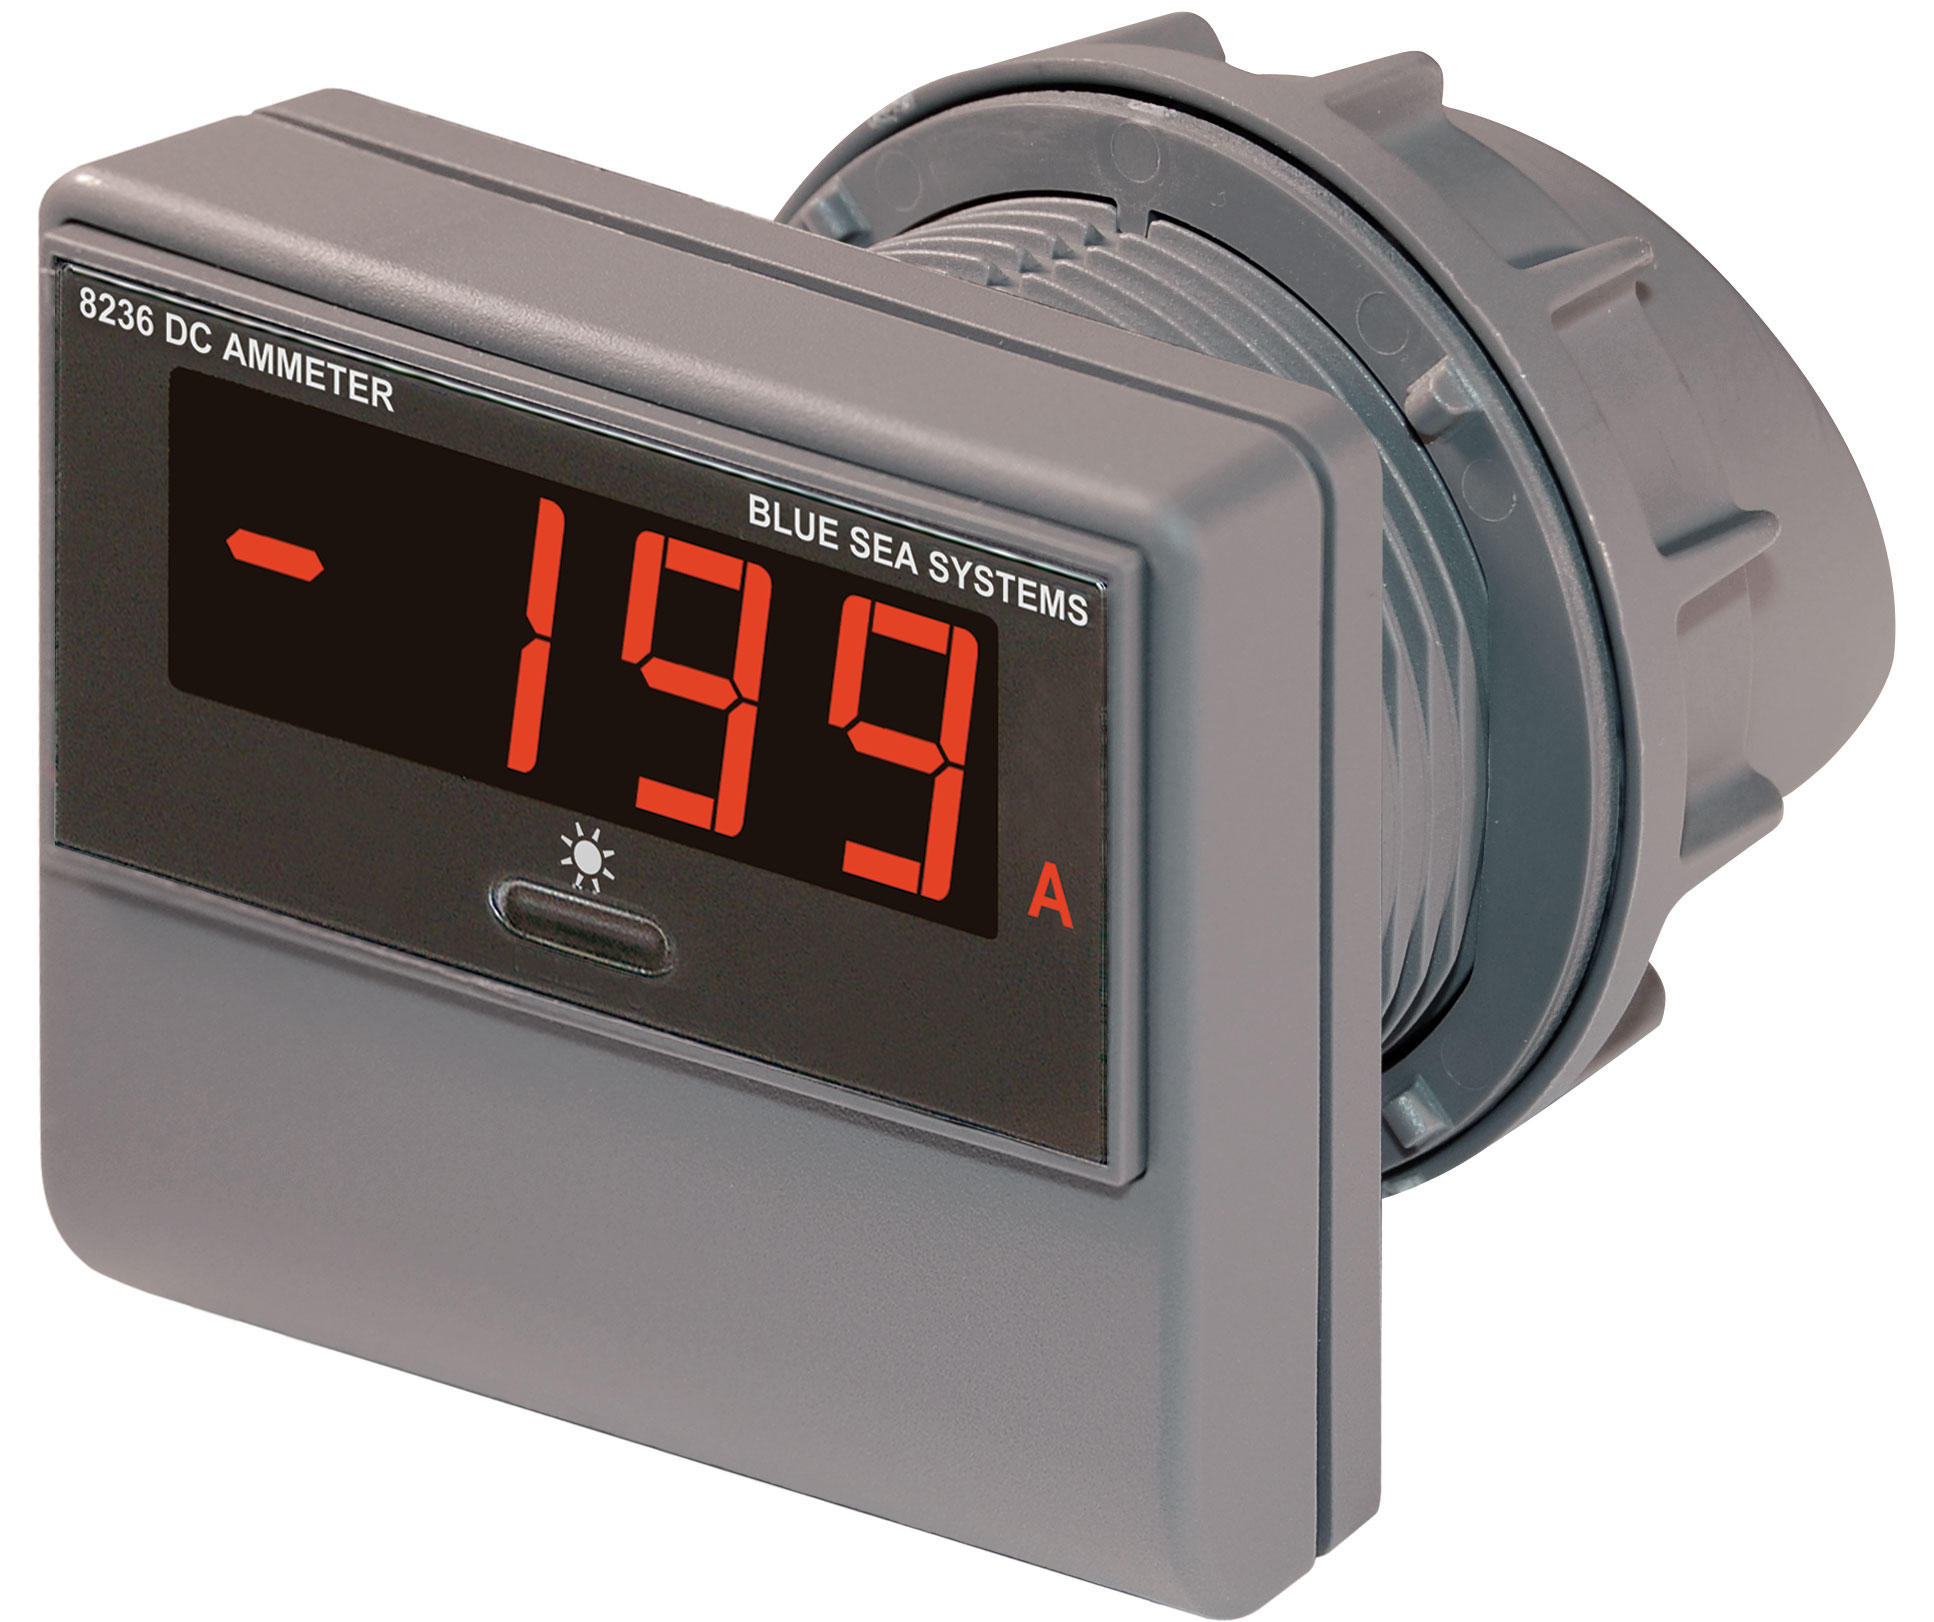 DC Digital Ammeter - 500 to 500A - Blue Sea Systems